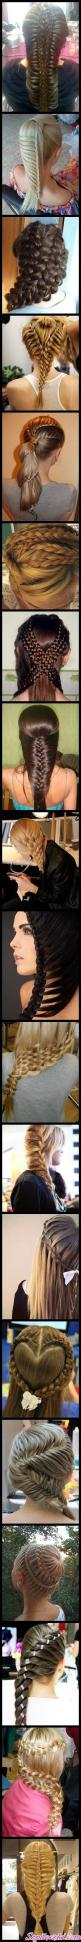 Wow Braids: Braids Hairstyles, Awesome Hair, Hairdos, Hair Styles, Braids Braids, Hair Do S, Holy Braids, Crazy Braids